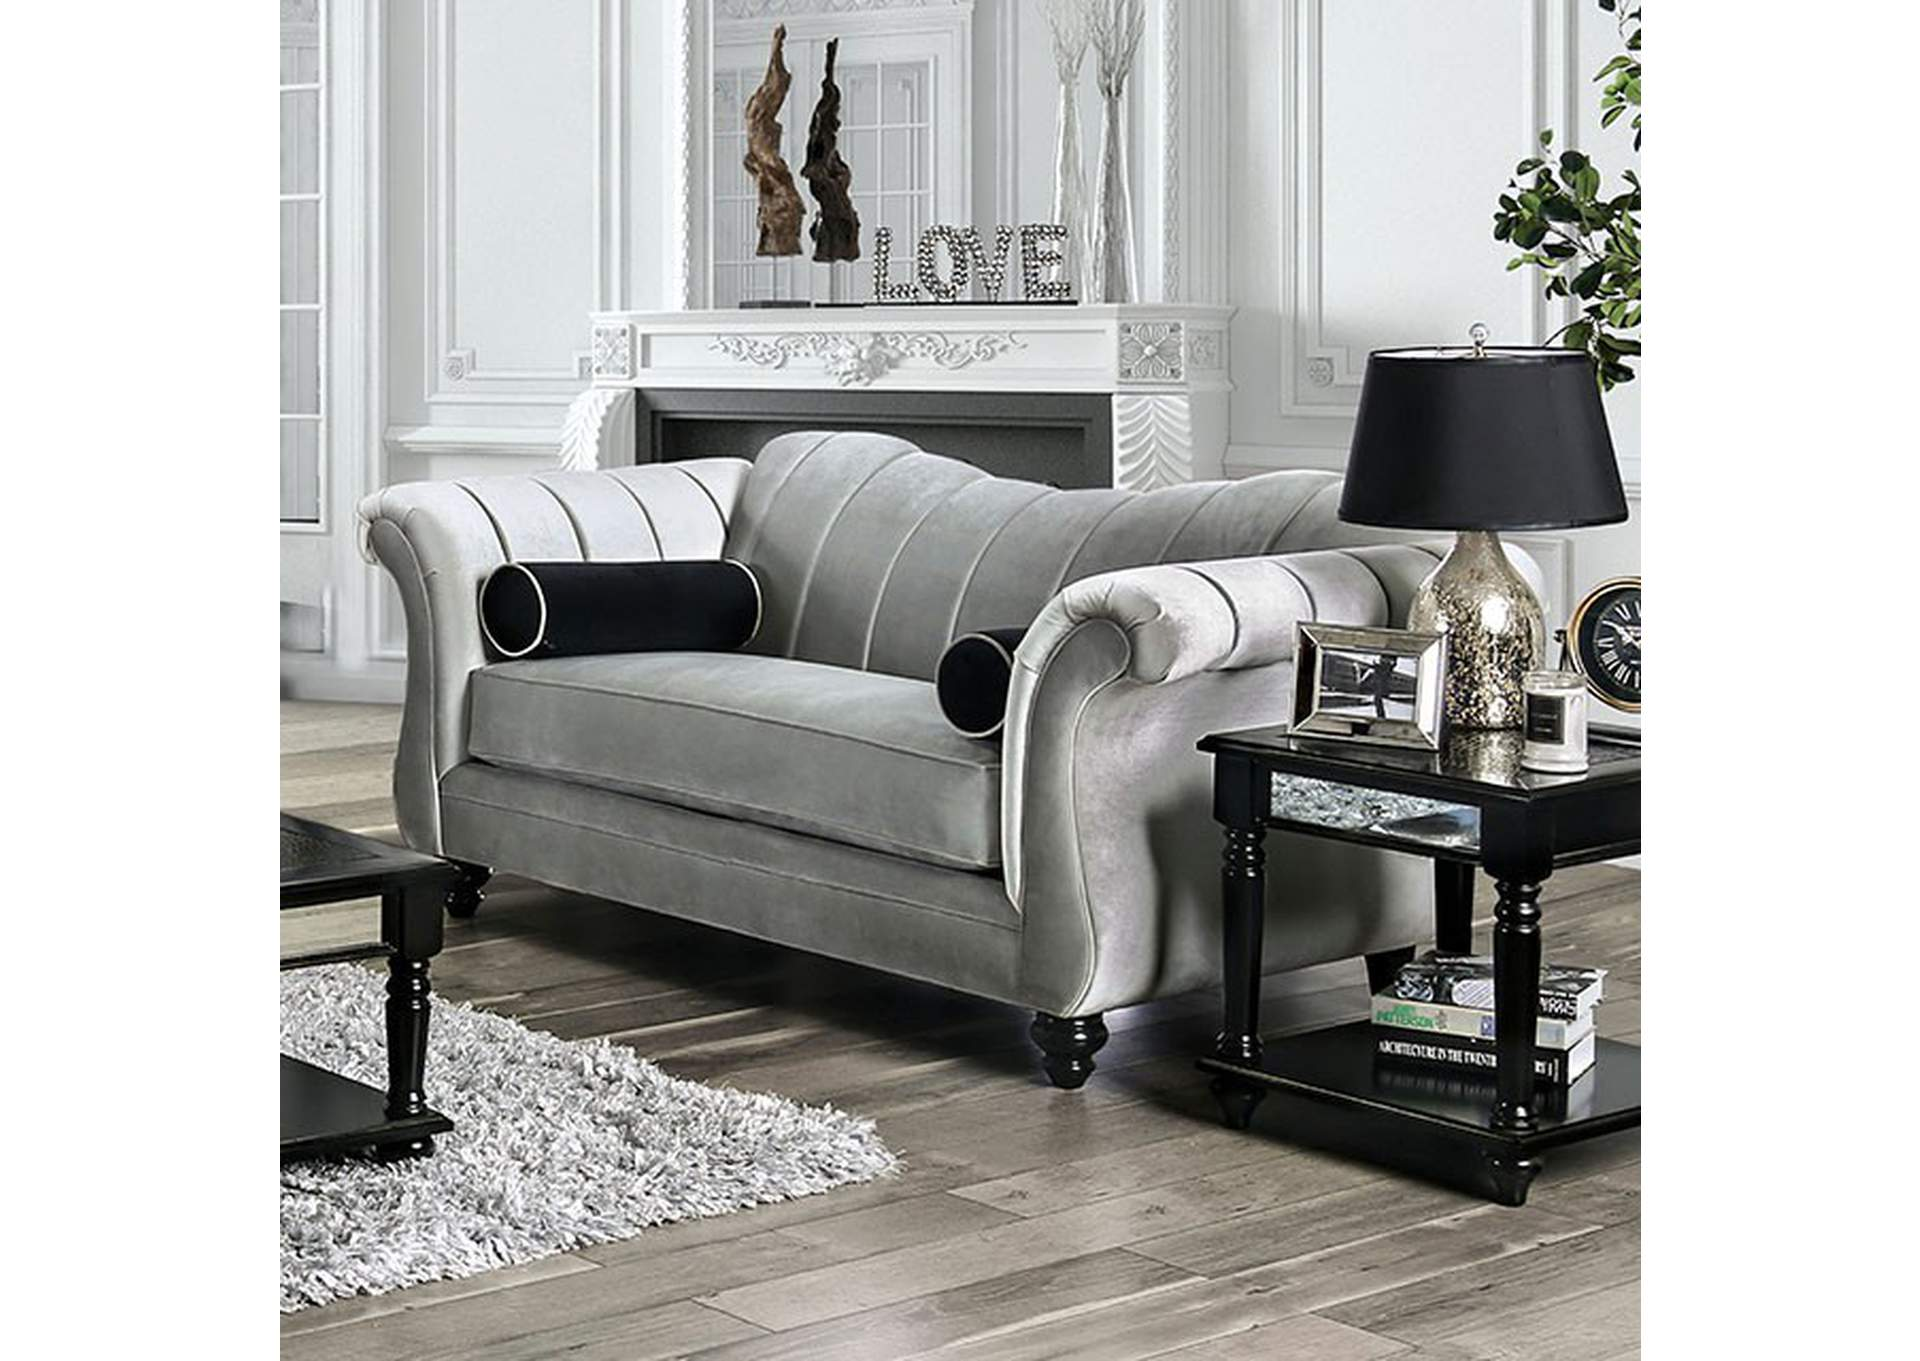 Marvin Gray Loveseat,Furniture of America